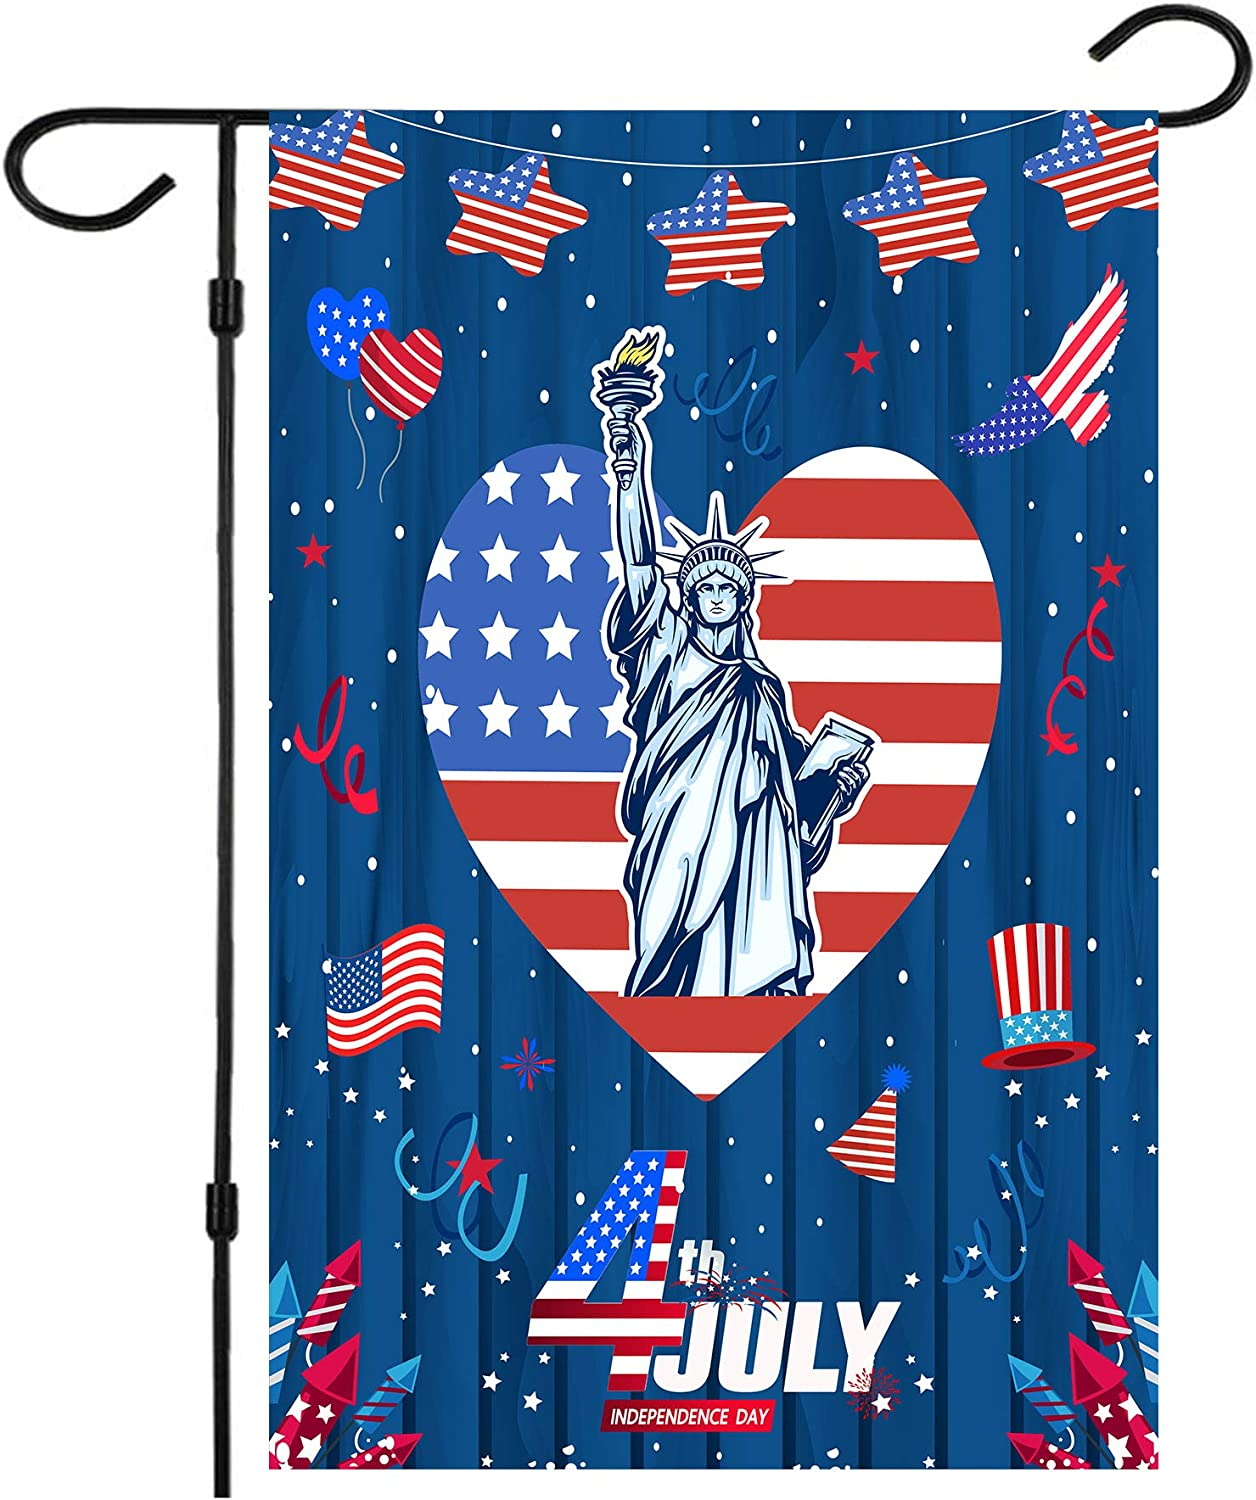 Happy 4th of July Garden Flags,Double Sided 4th of July Independence Day Flag Yard Decorations Memorial Patriotic Star Statue of Liberty House Flag 12 x 18 Inch American Holiday USA Seasonal Flags